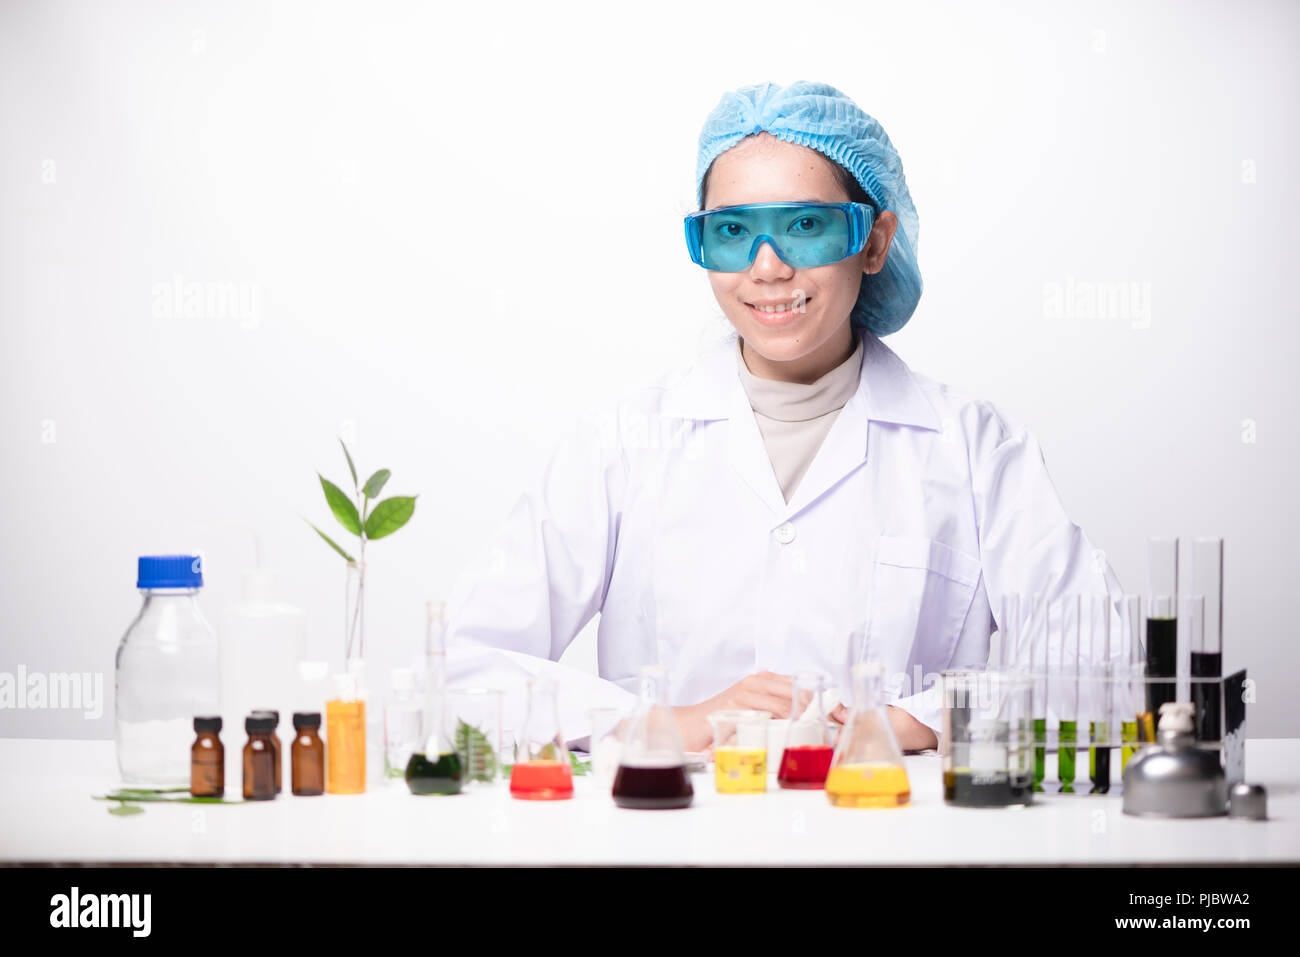 A girl technician scientist in a medical laboratory Stock Photo